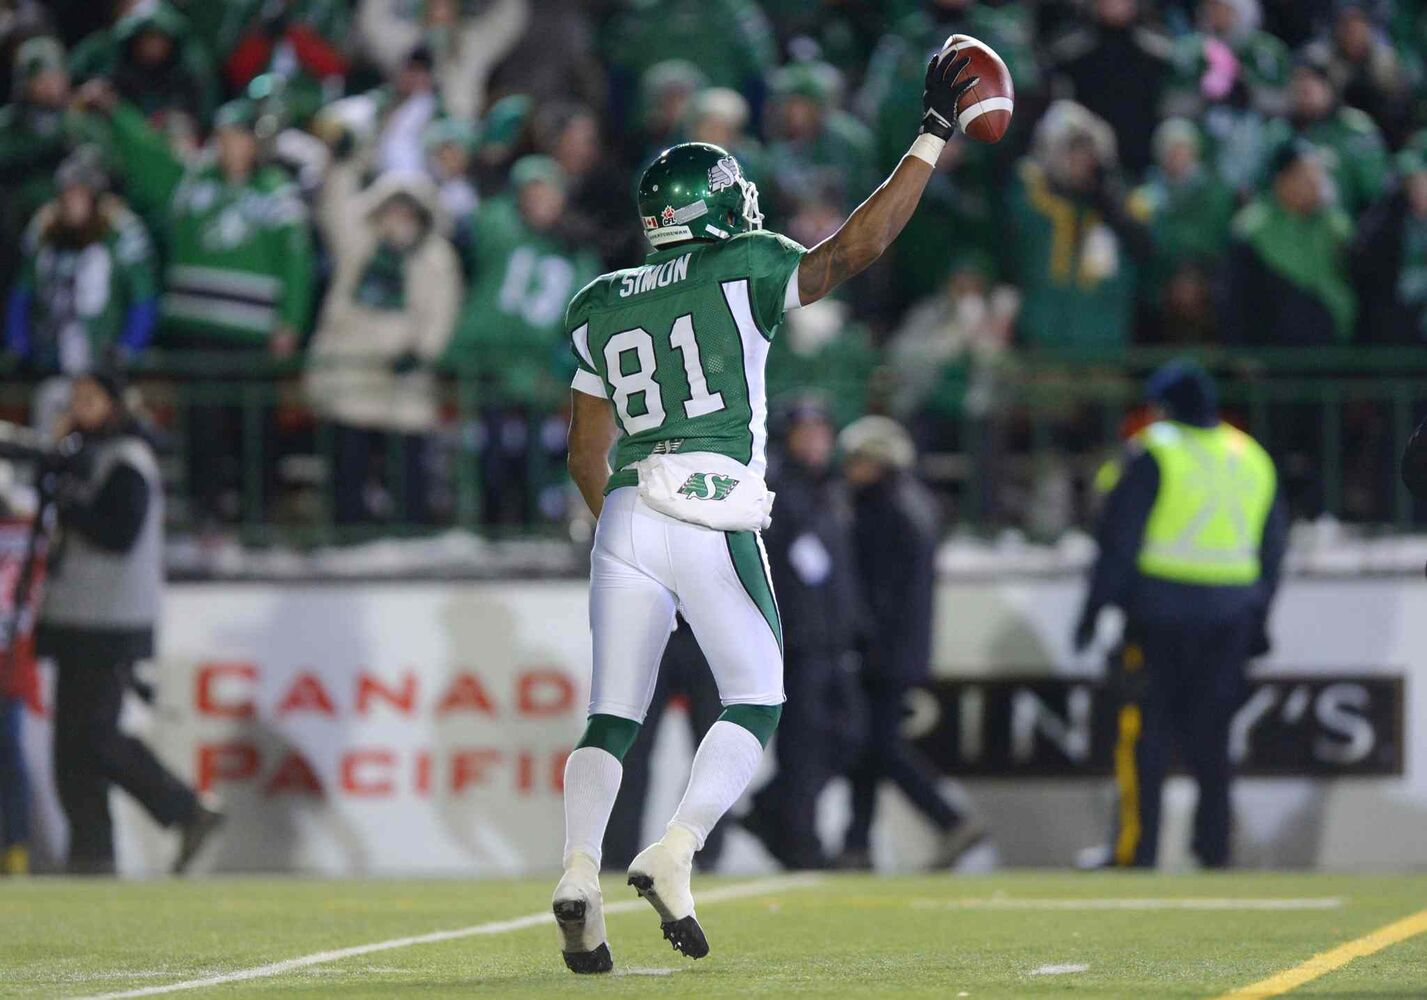 Saskatchewan Roughriders slotback Geroy Simon celebrates his second touchdown against the Hamilton Tiger-Cats during the second quarter. (Jonathan Hayward / The Canadian Press)